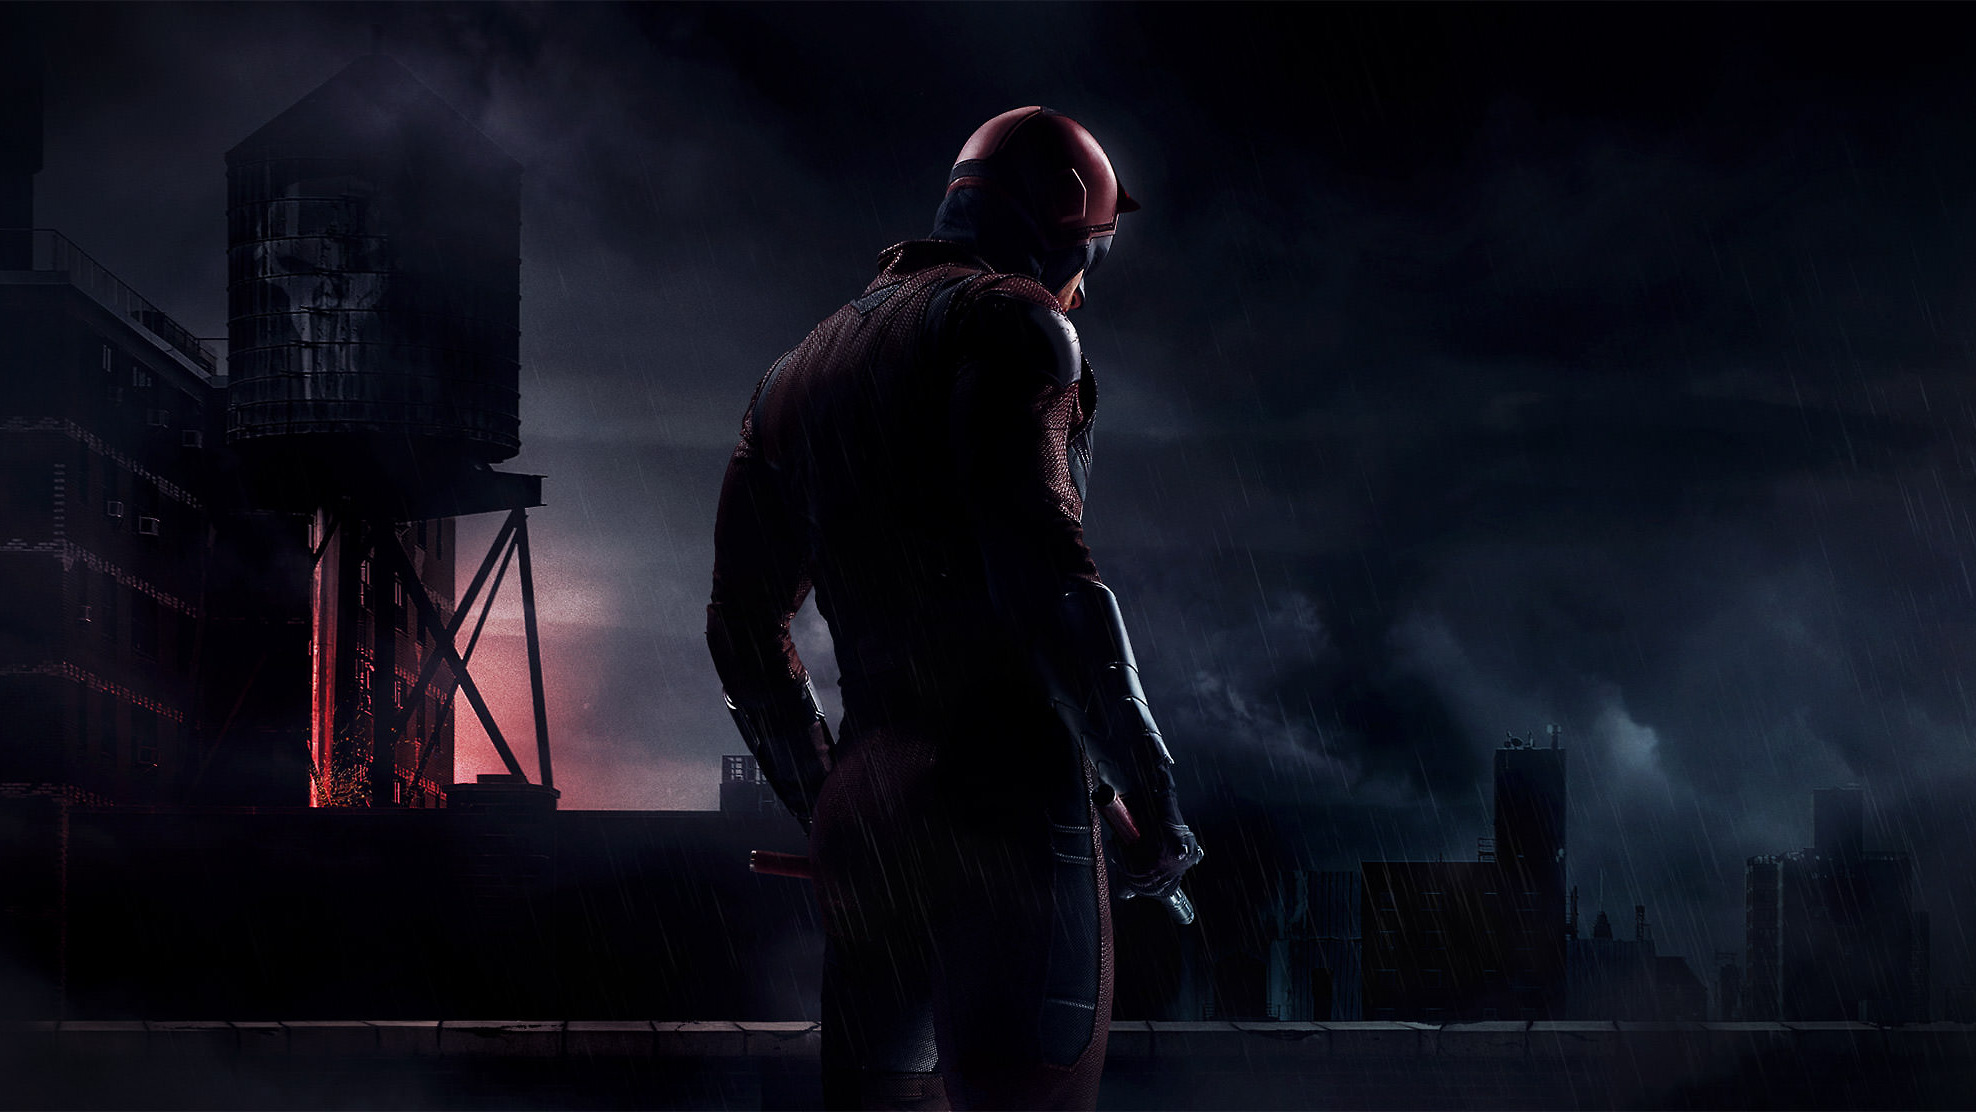 daredevil wallpaper in -#main